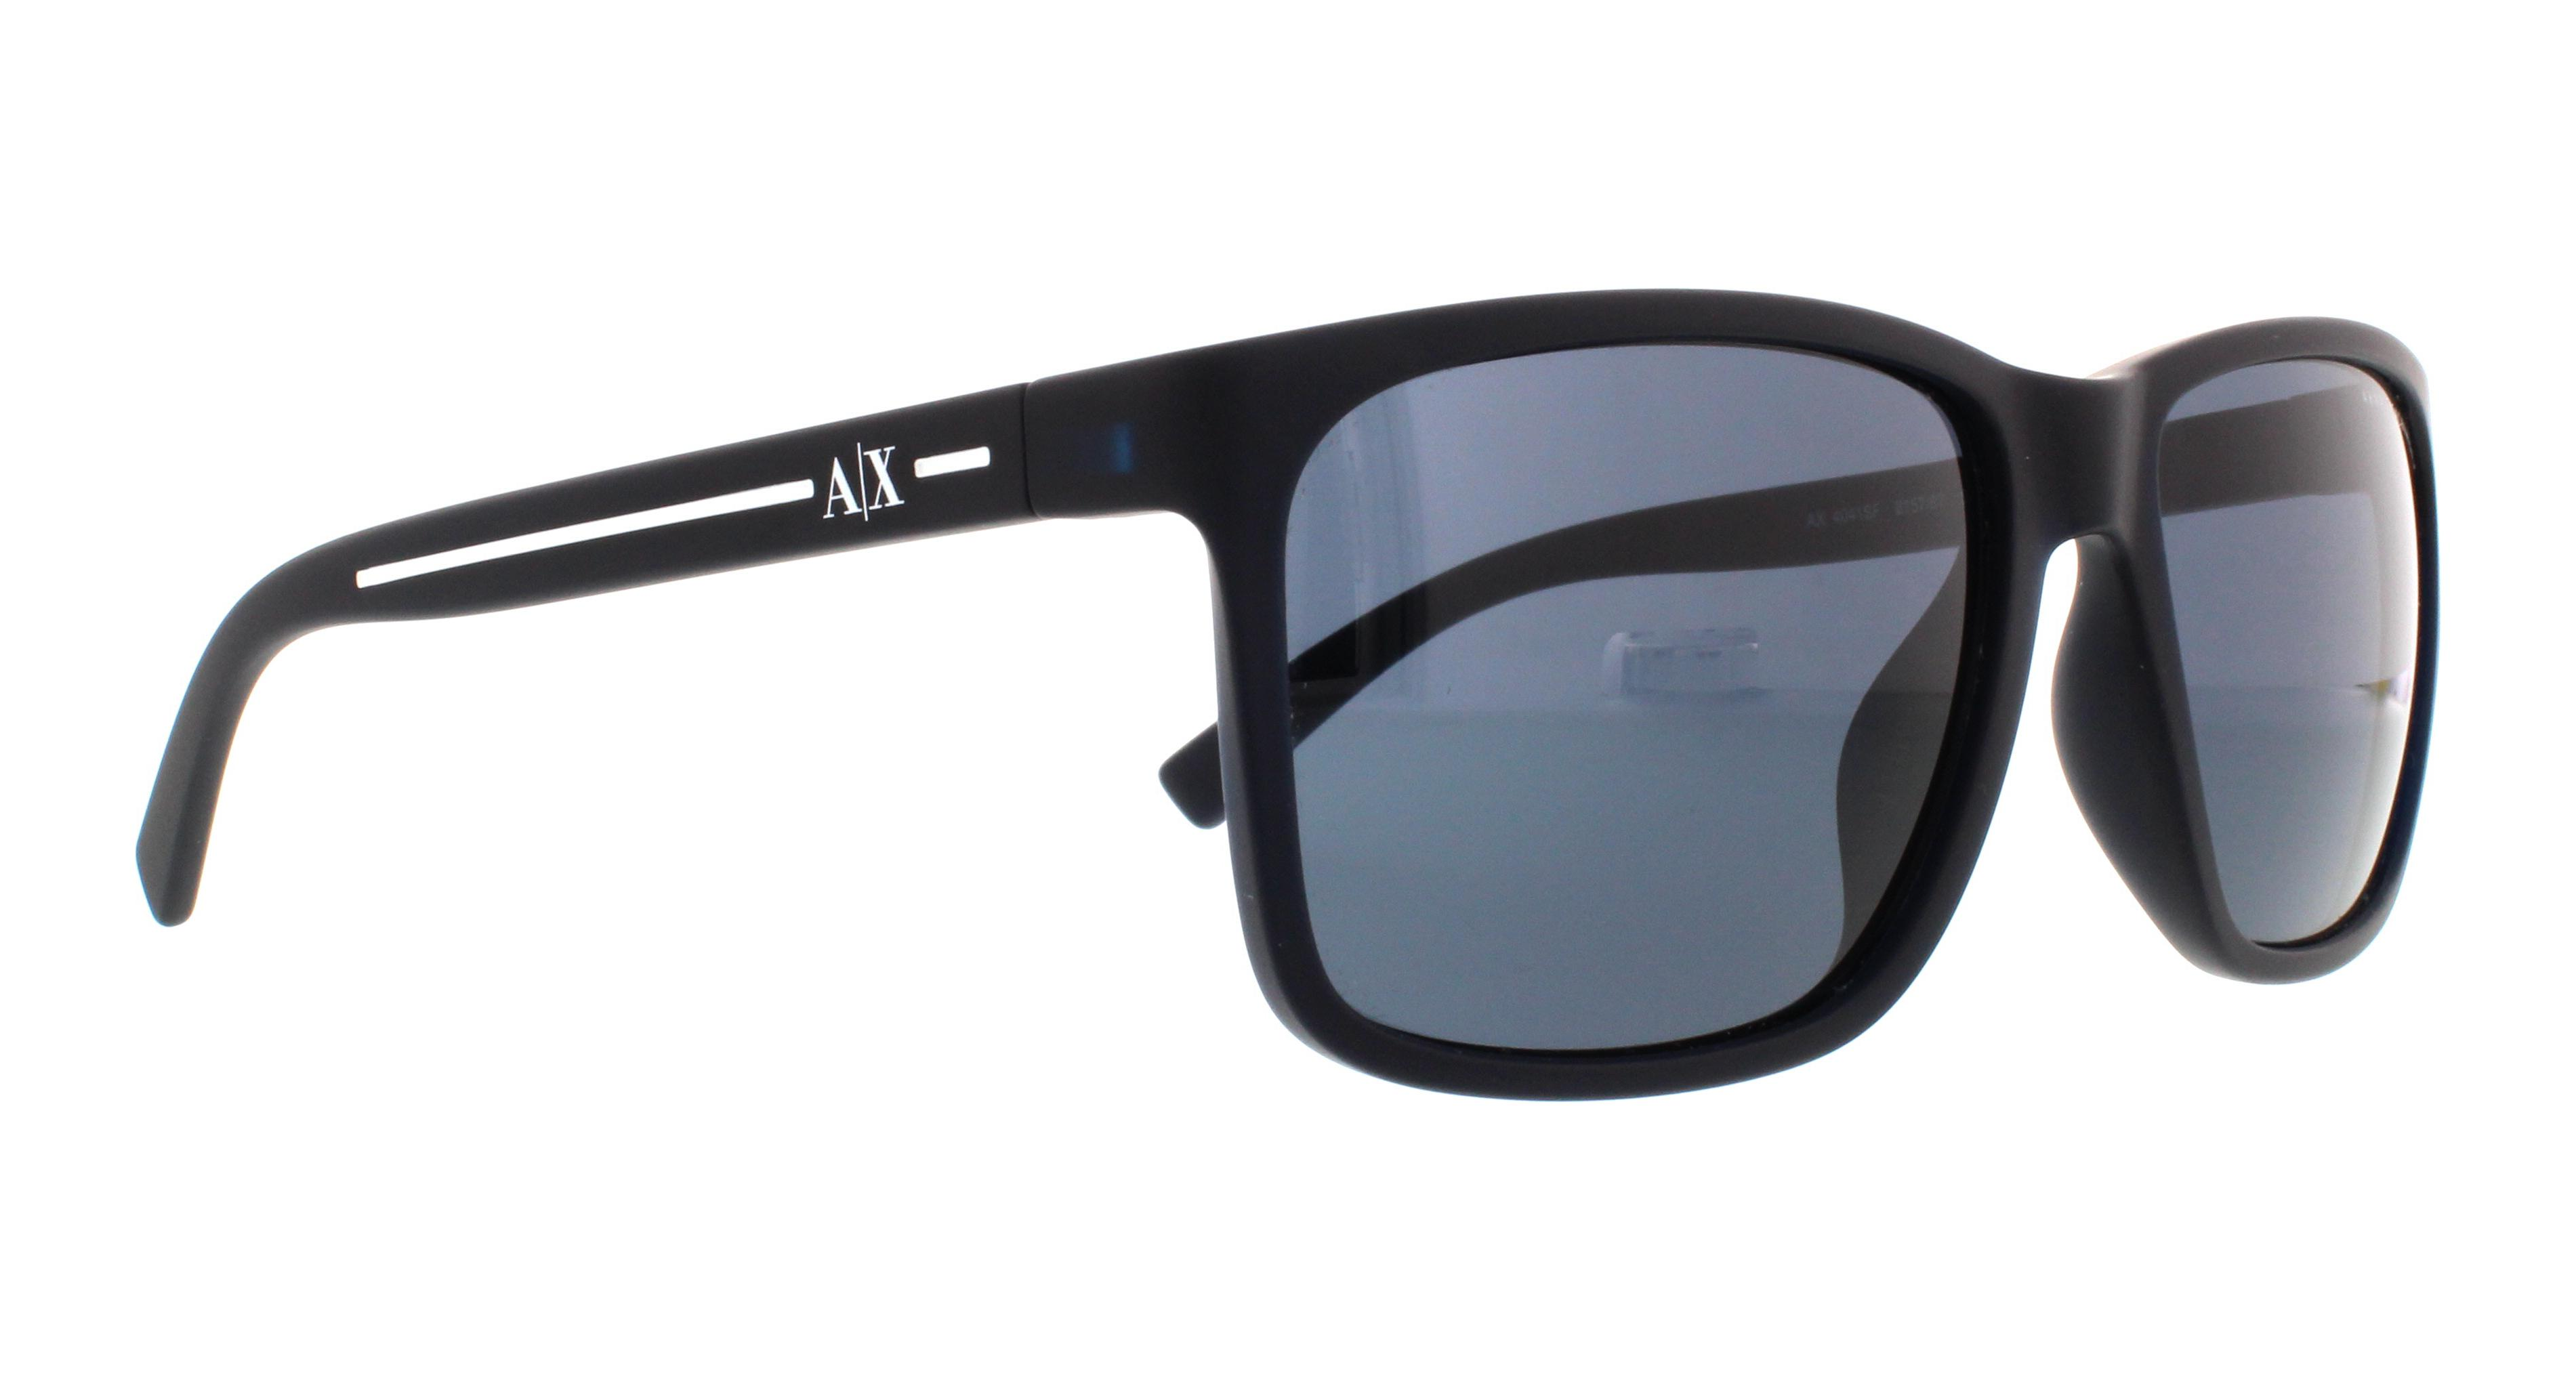 85bc9648ae620 ARMANI EXCHANGE - ARMANI EXCHANGE Sunglasses AX 4041SF 815787 Matte Blue  58MM - Walmart.com